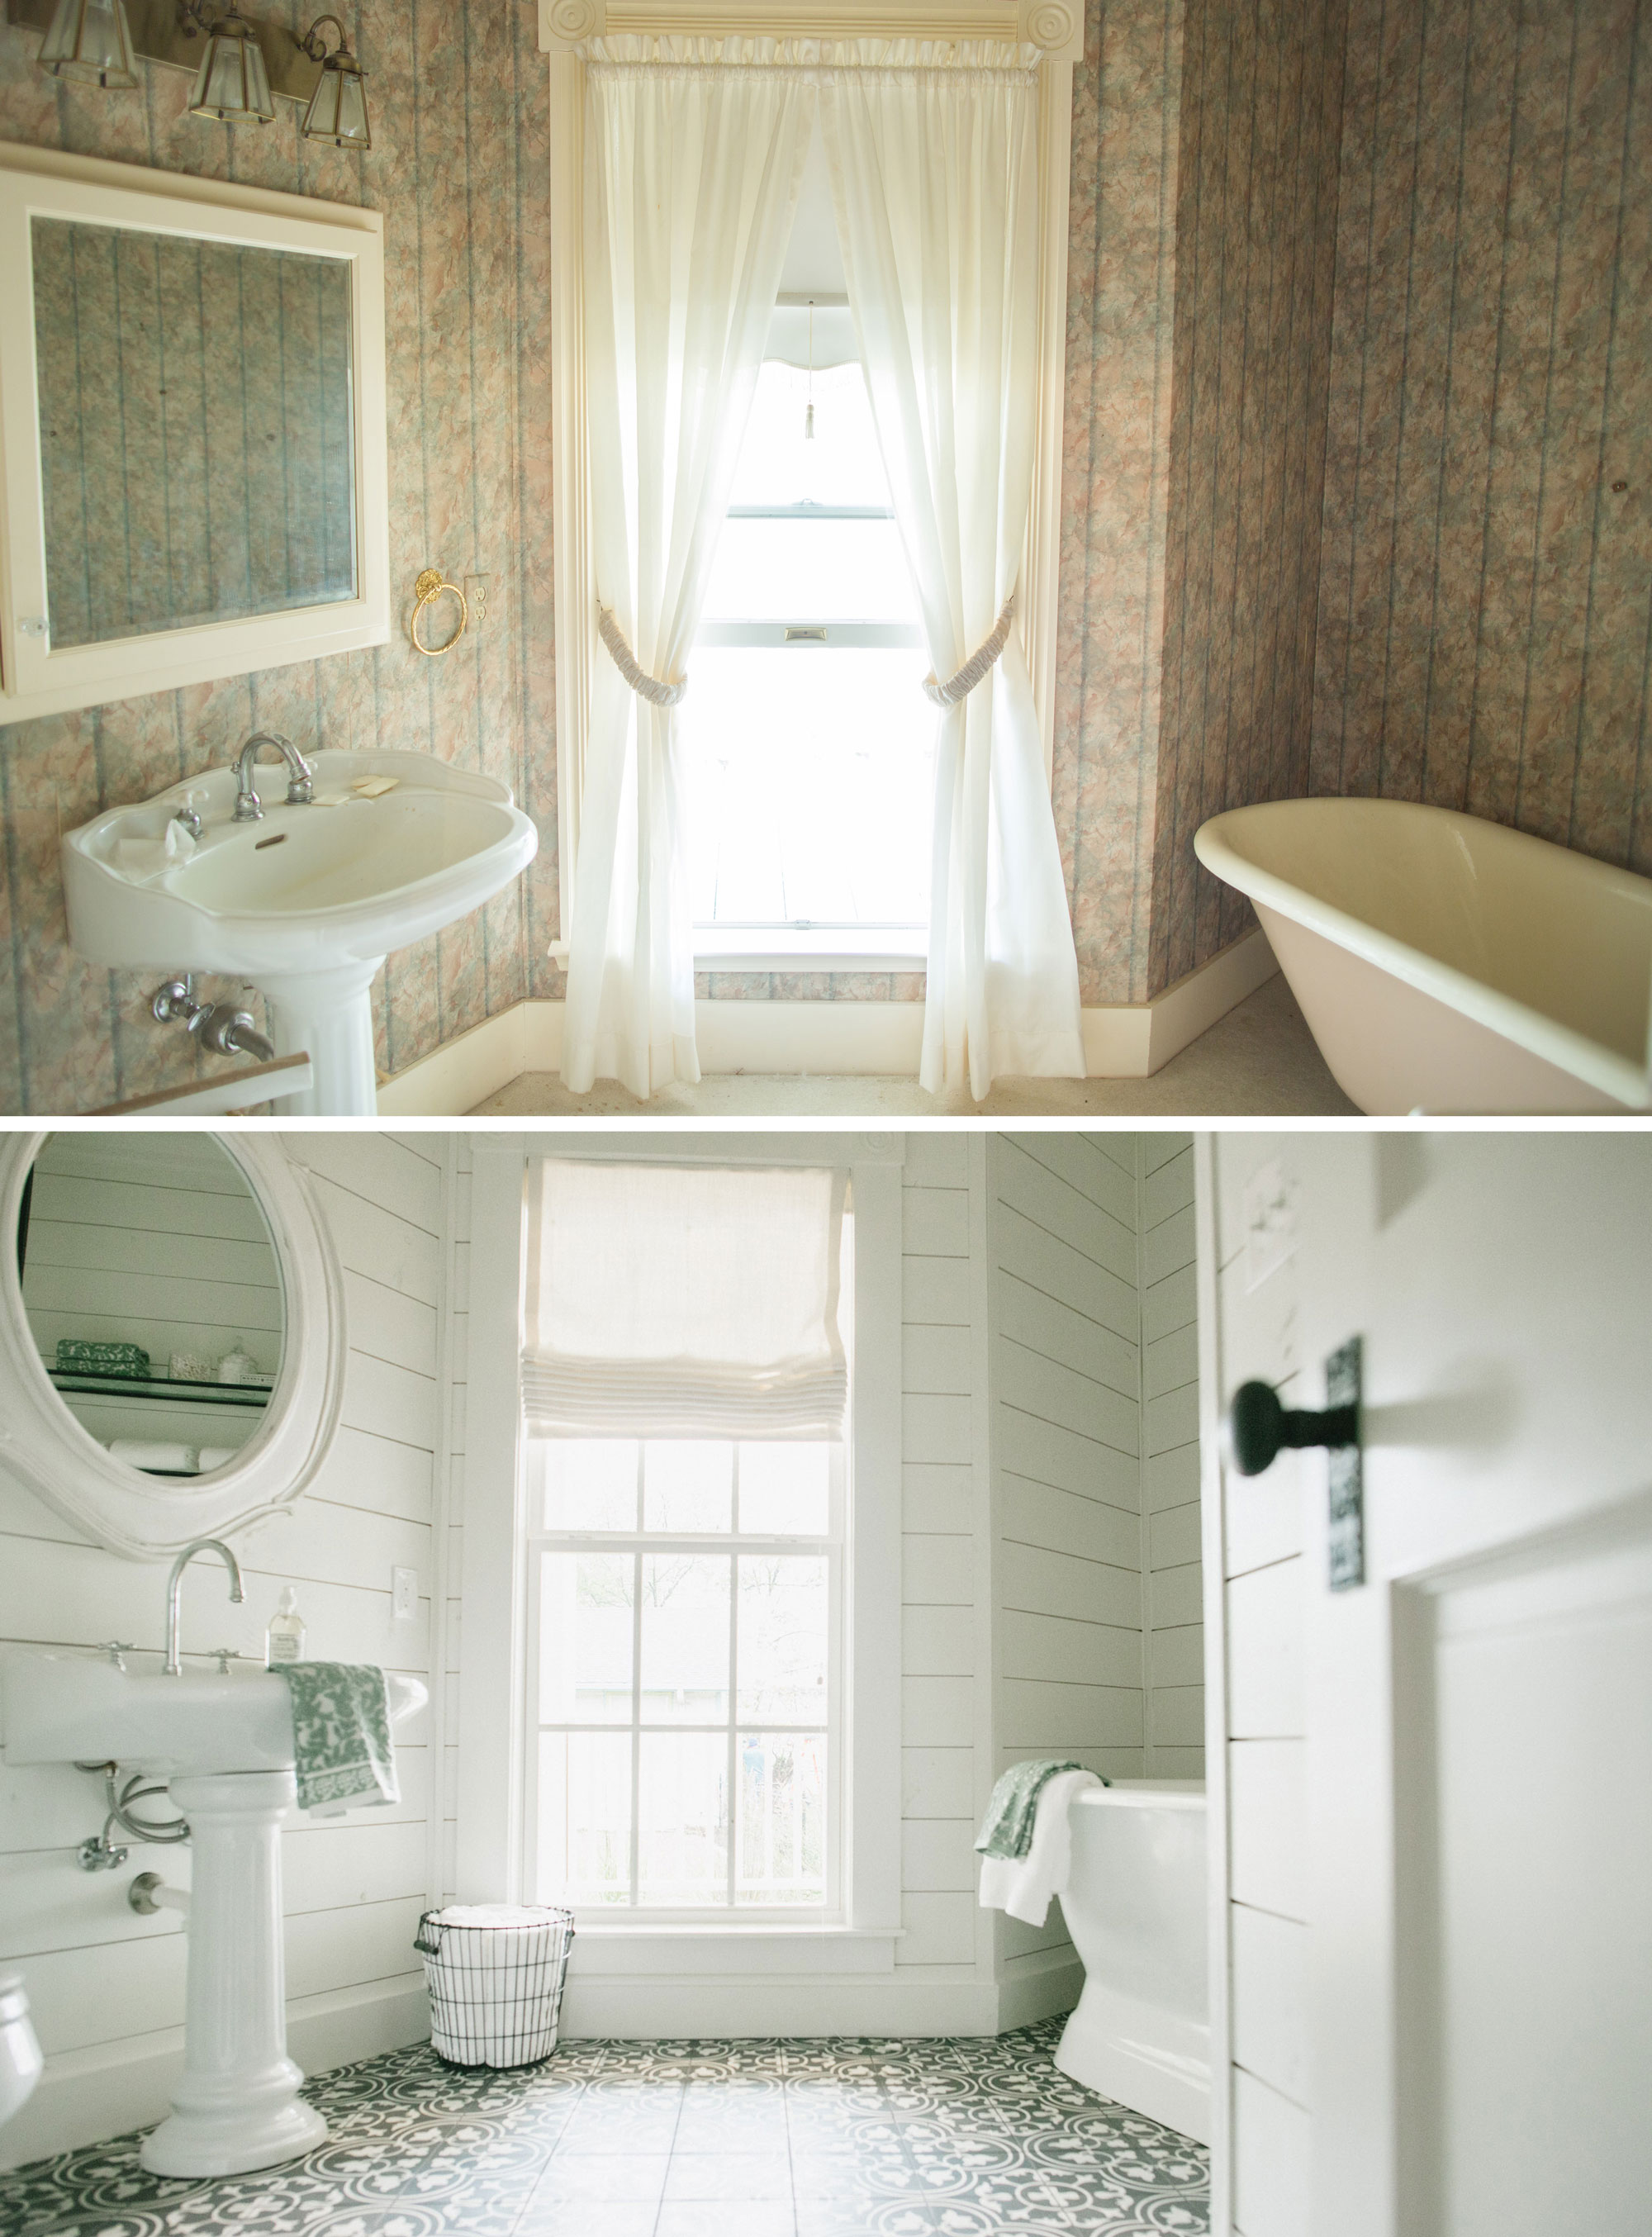 Magnolia house the new b b by fixer upper - Fixer upper long narrow bathroom ...